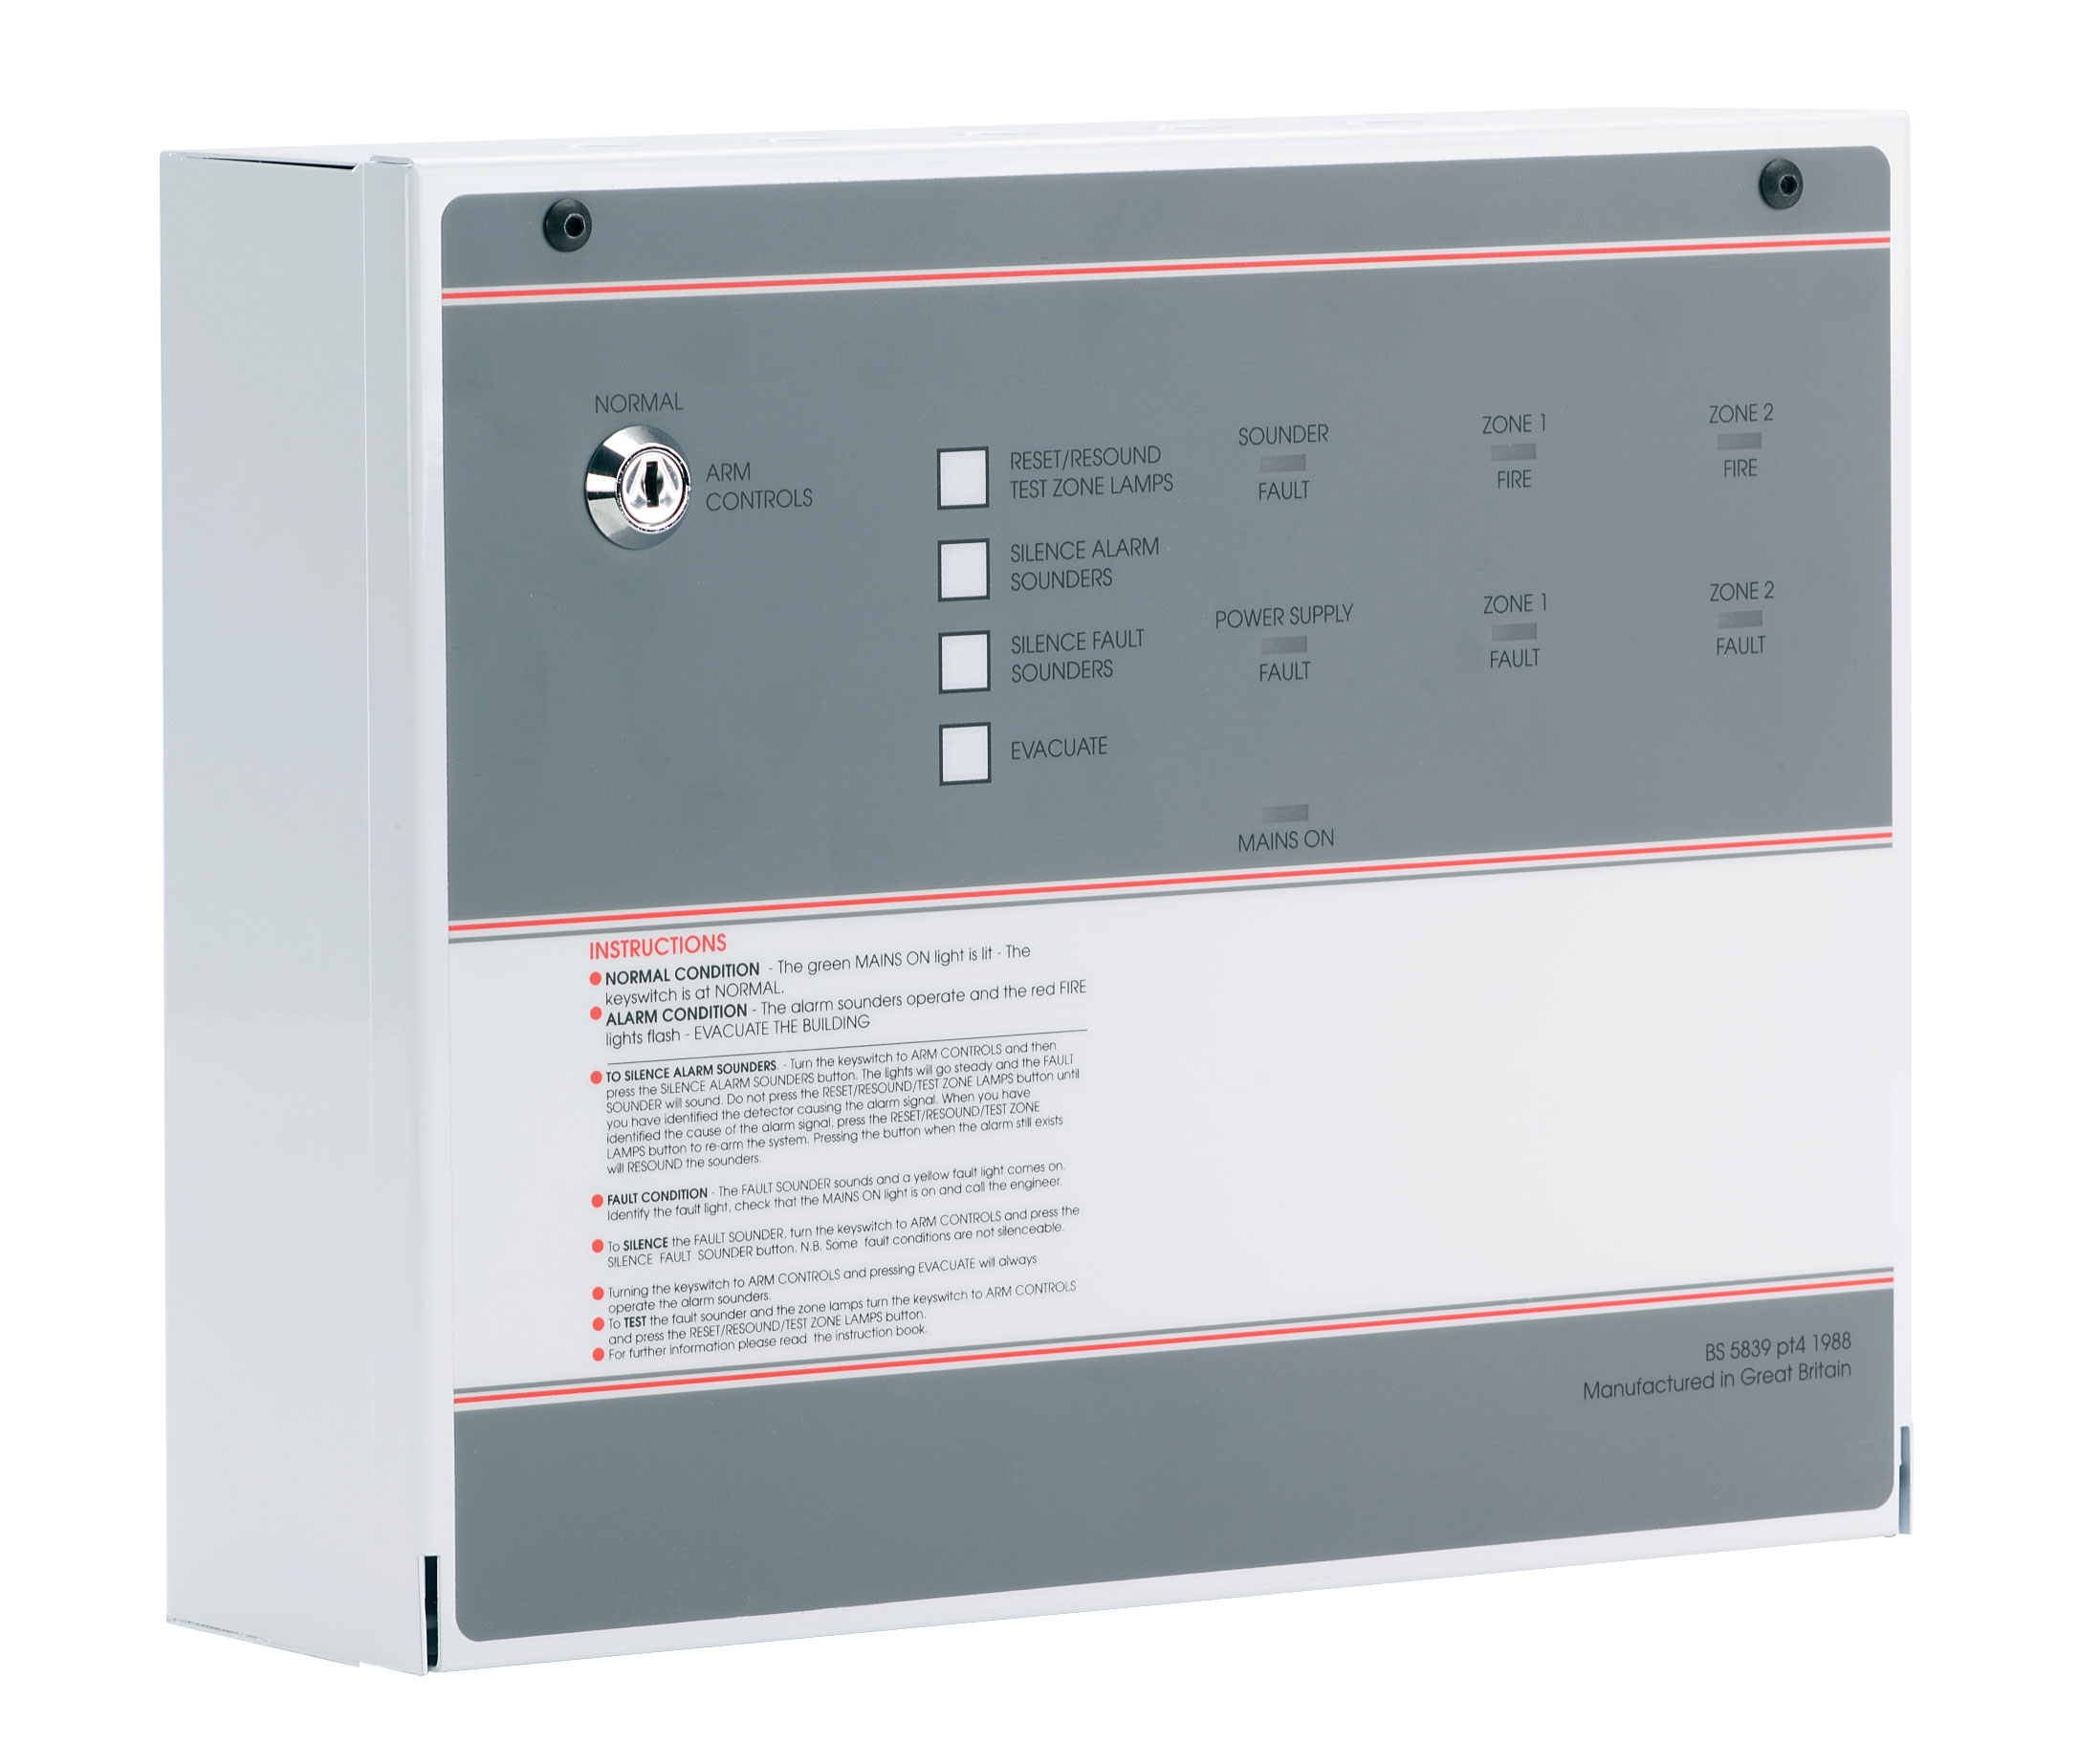 FF382-2 FP 2 Zone Conventional Fire Alarm Panel